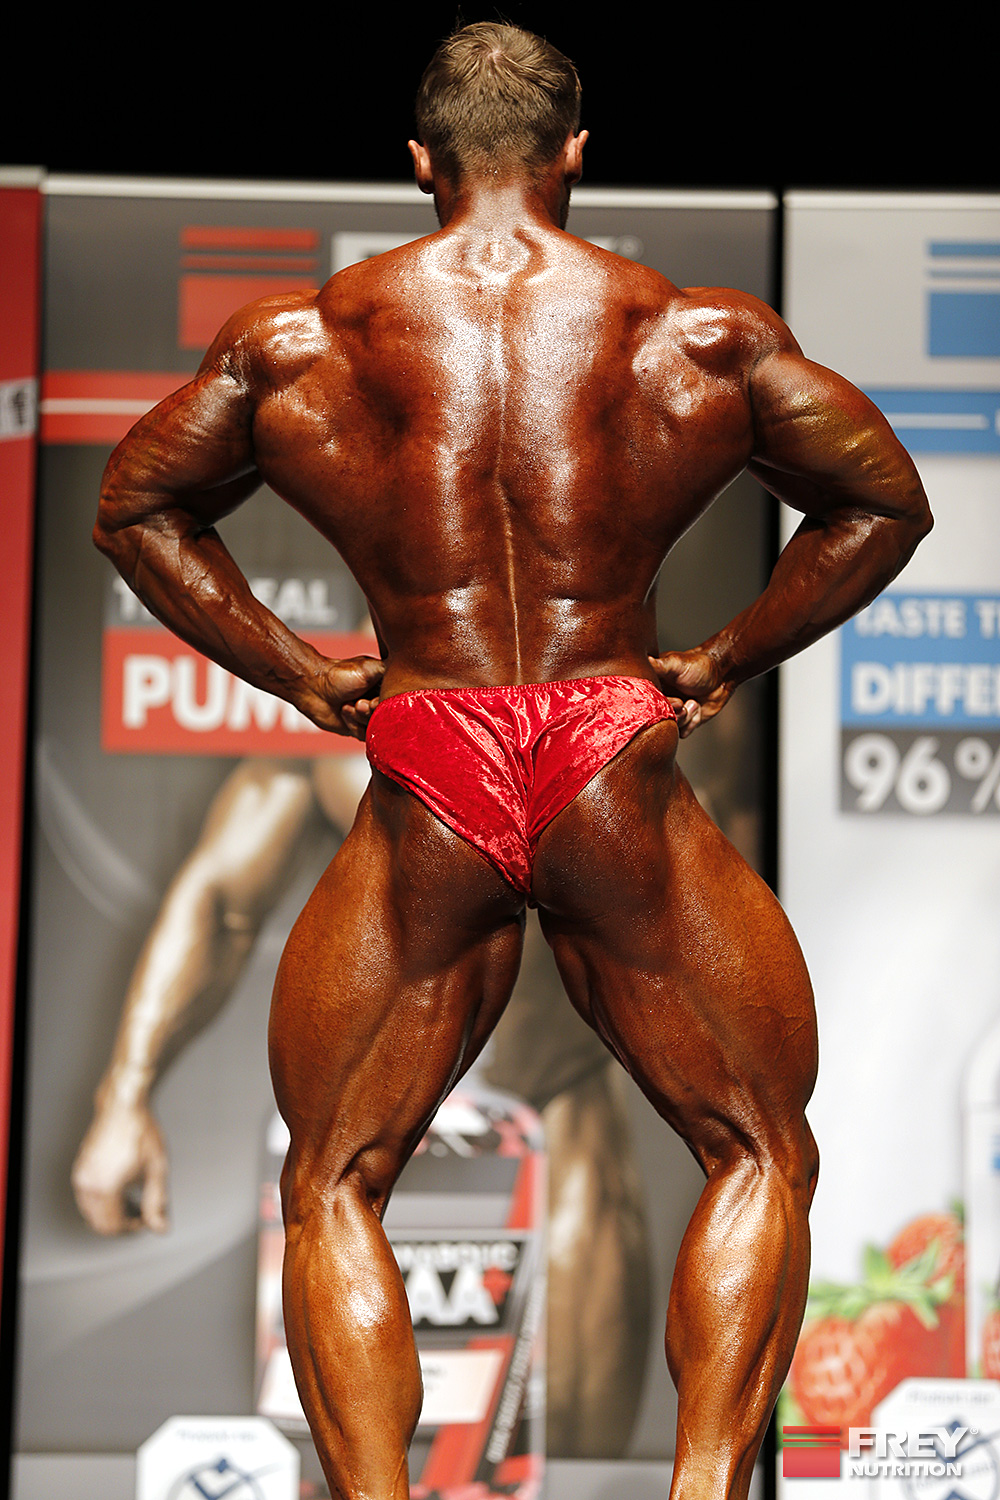 Dorian Berger - back lat spread